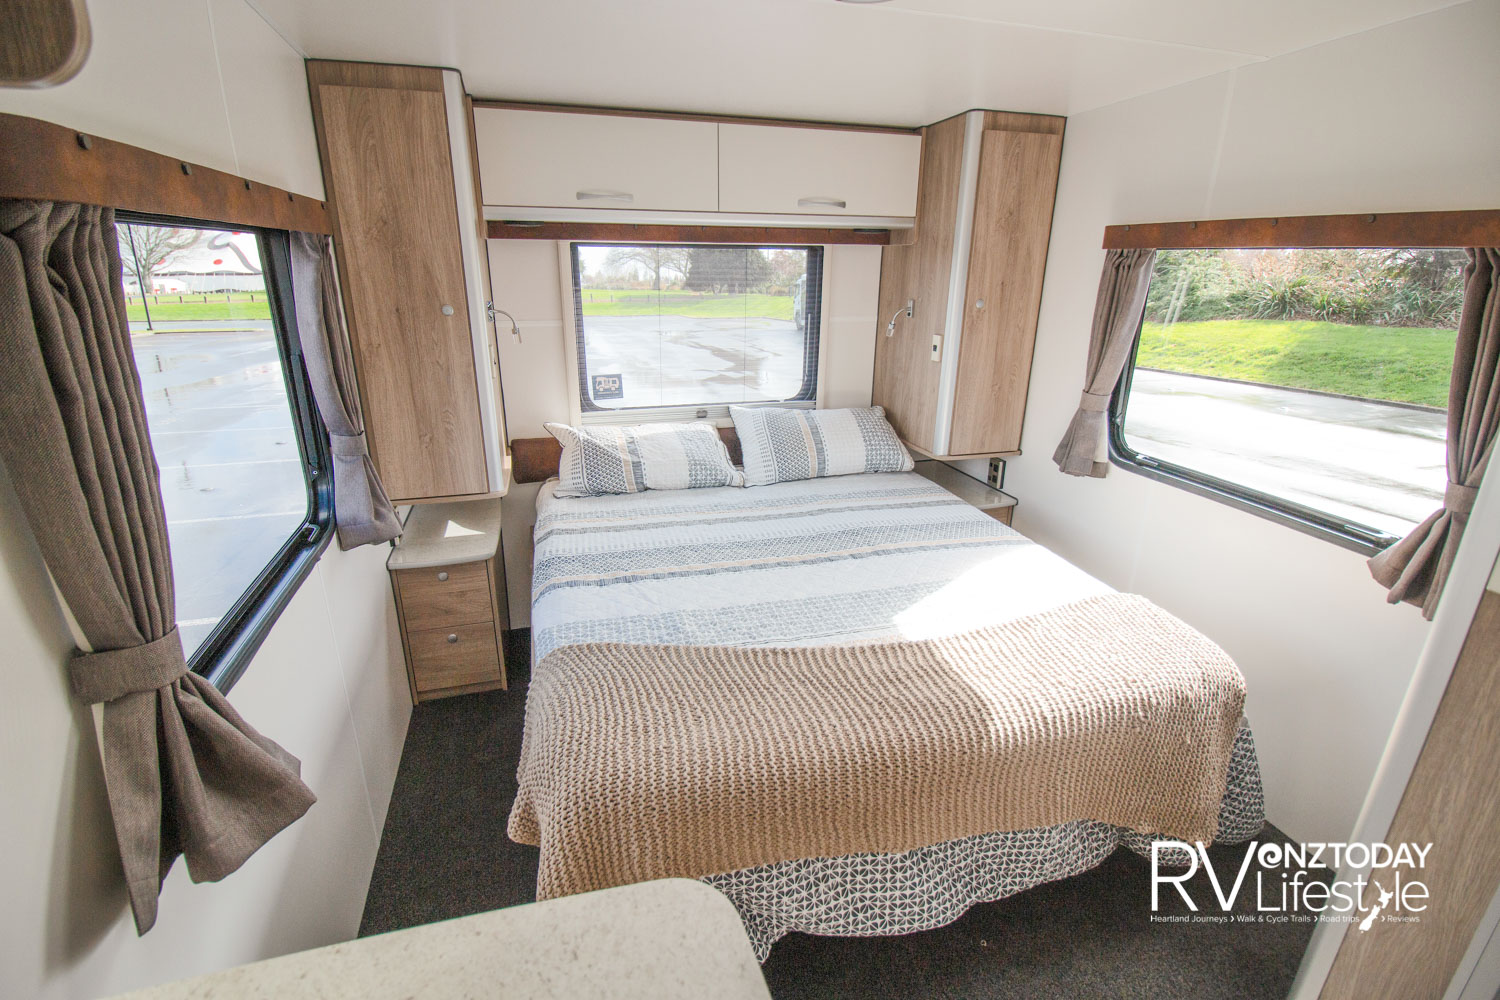 The island bed in the rear will please many, as will the spacious wardrobes on both sides, reading lights, and drawers with room for book, glasses and of course your morning cuppa, all whilst looking at the views from your bedroom windows